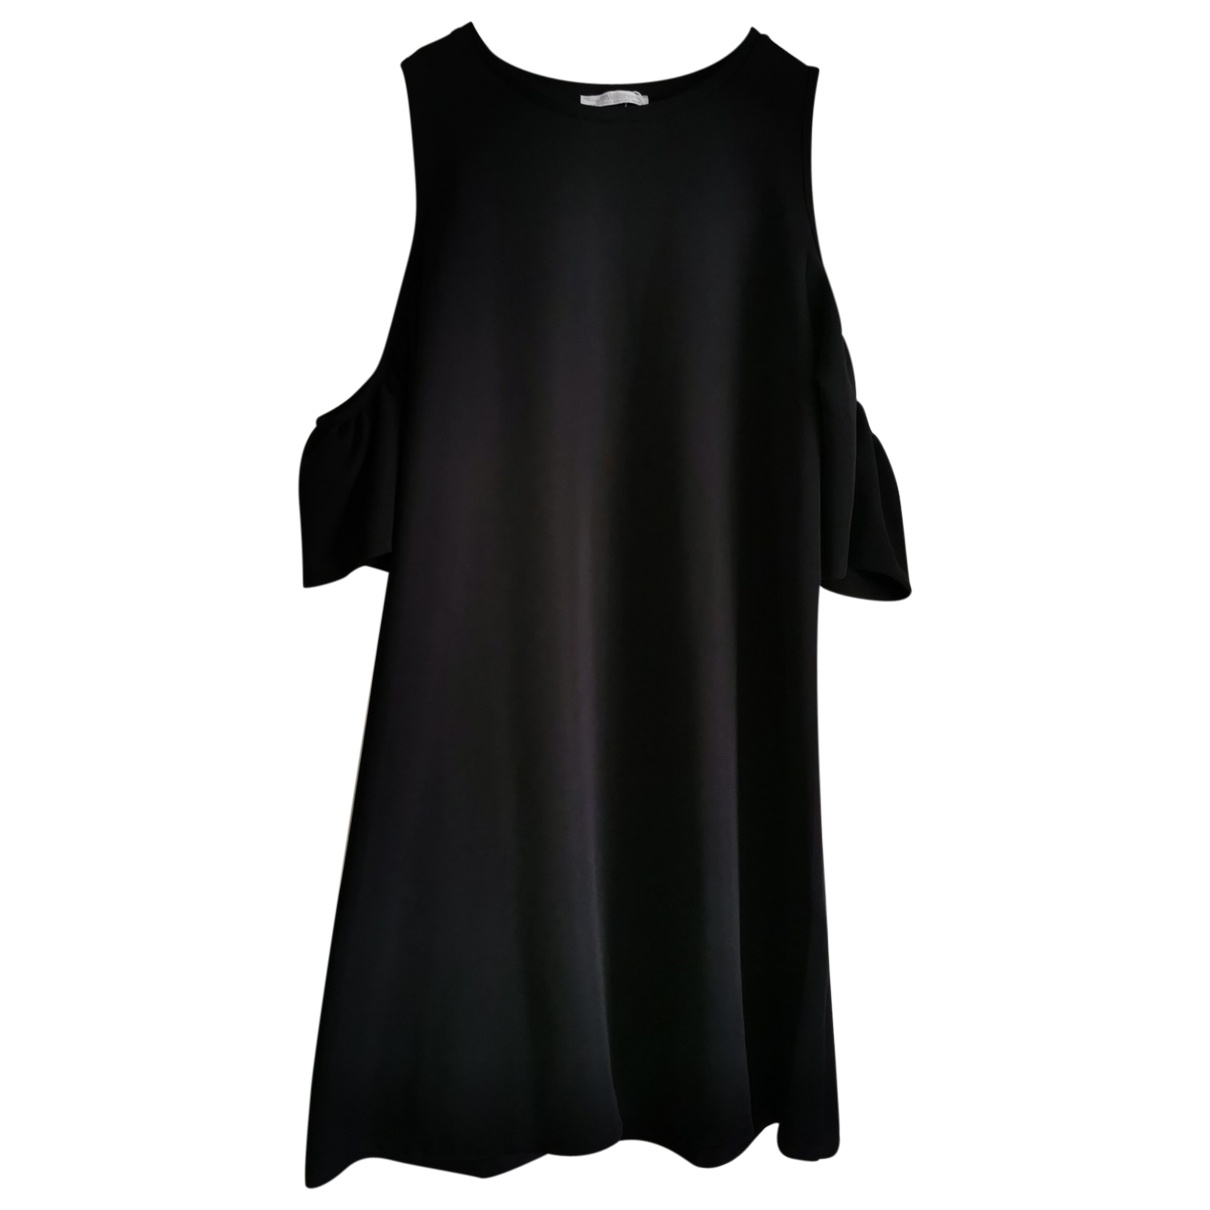 Zara \N Black dress for Women L International